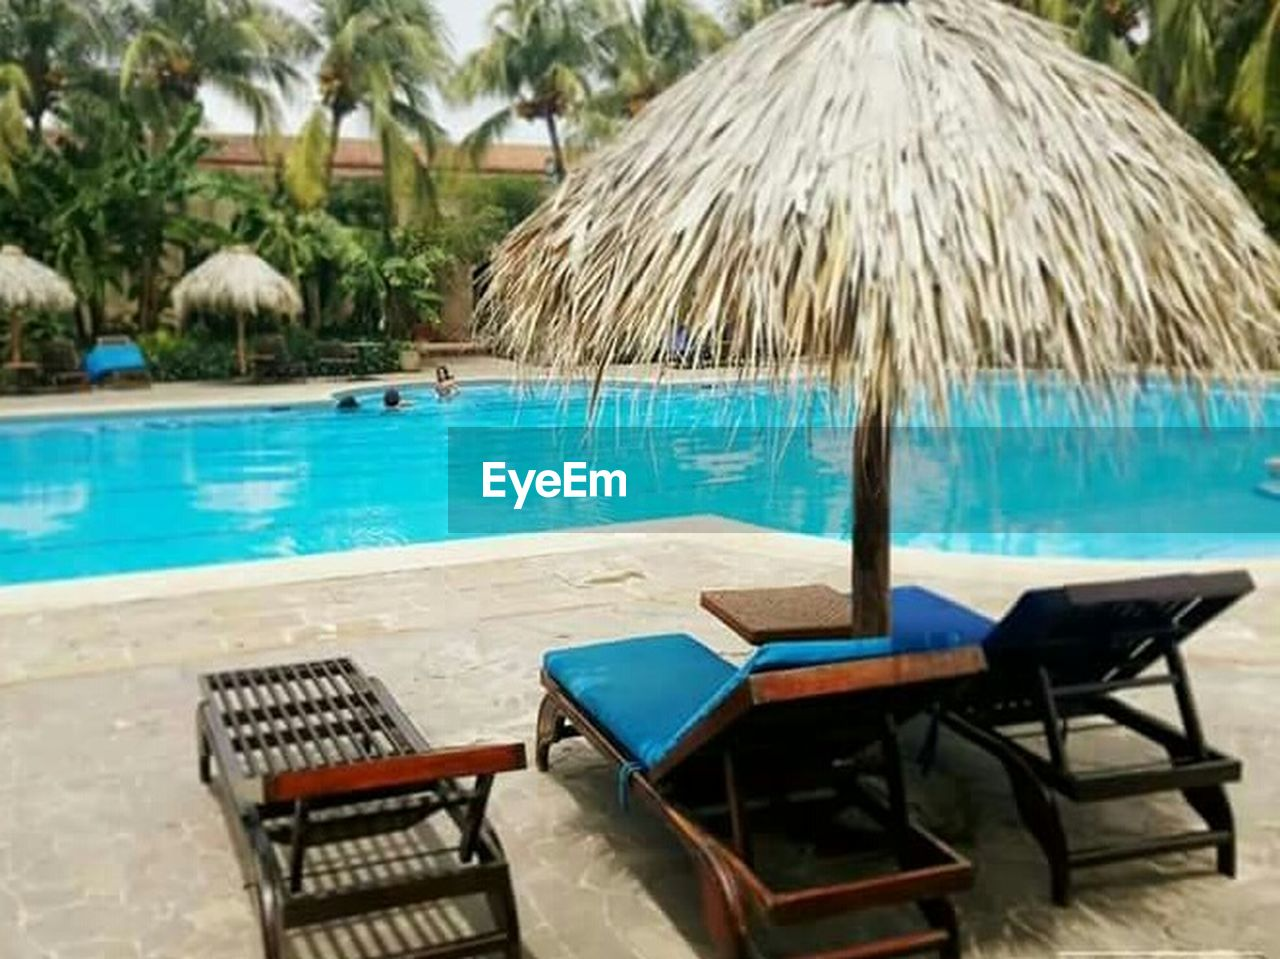 swimming pool, water, no people, day, tourist resort, luxury, thatched roof, chair, tranquility, beach, luxury hotel, vacations, outdoors, palm tree, nature, close-up